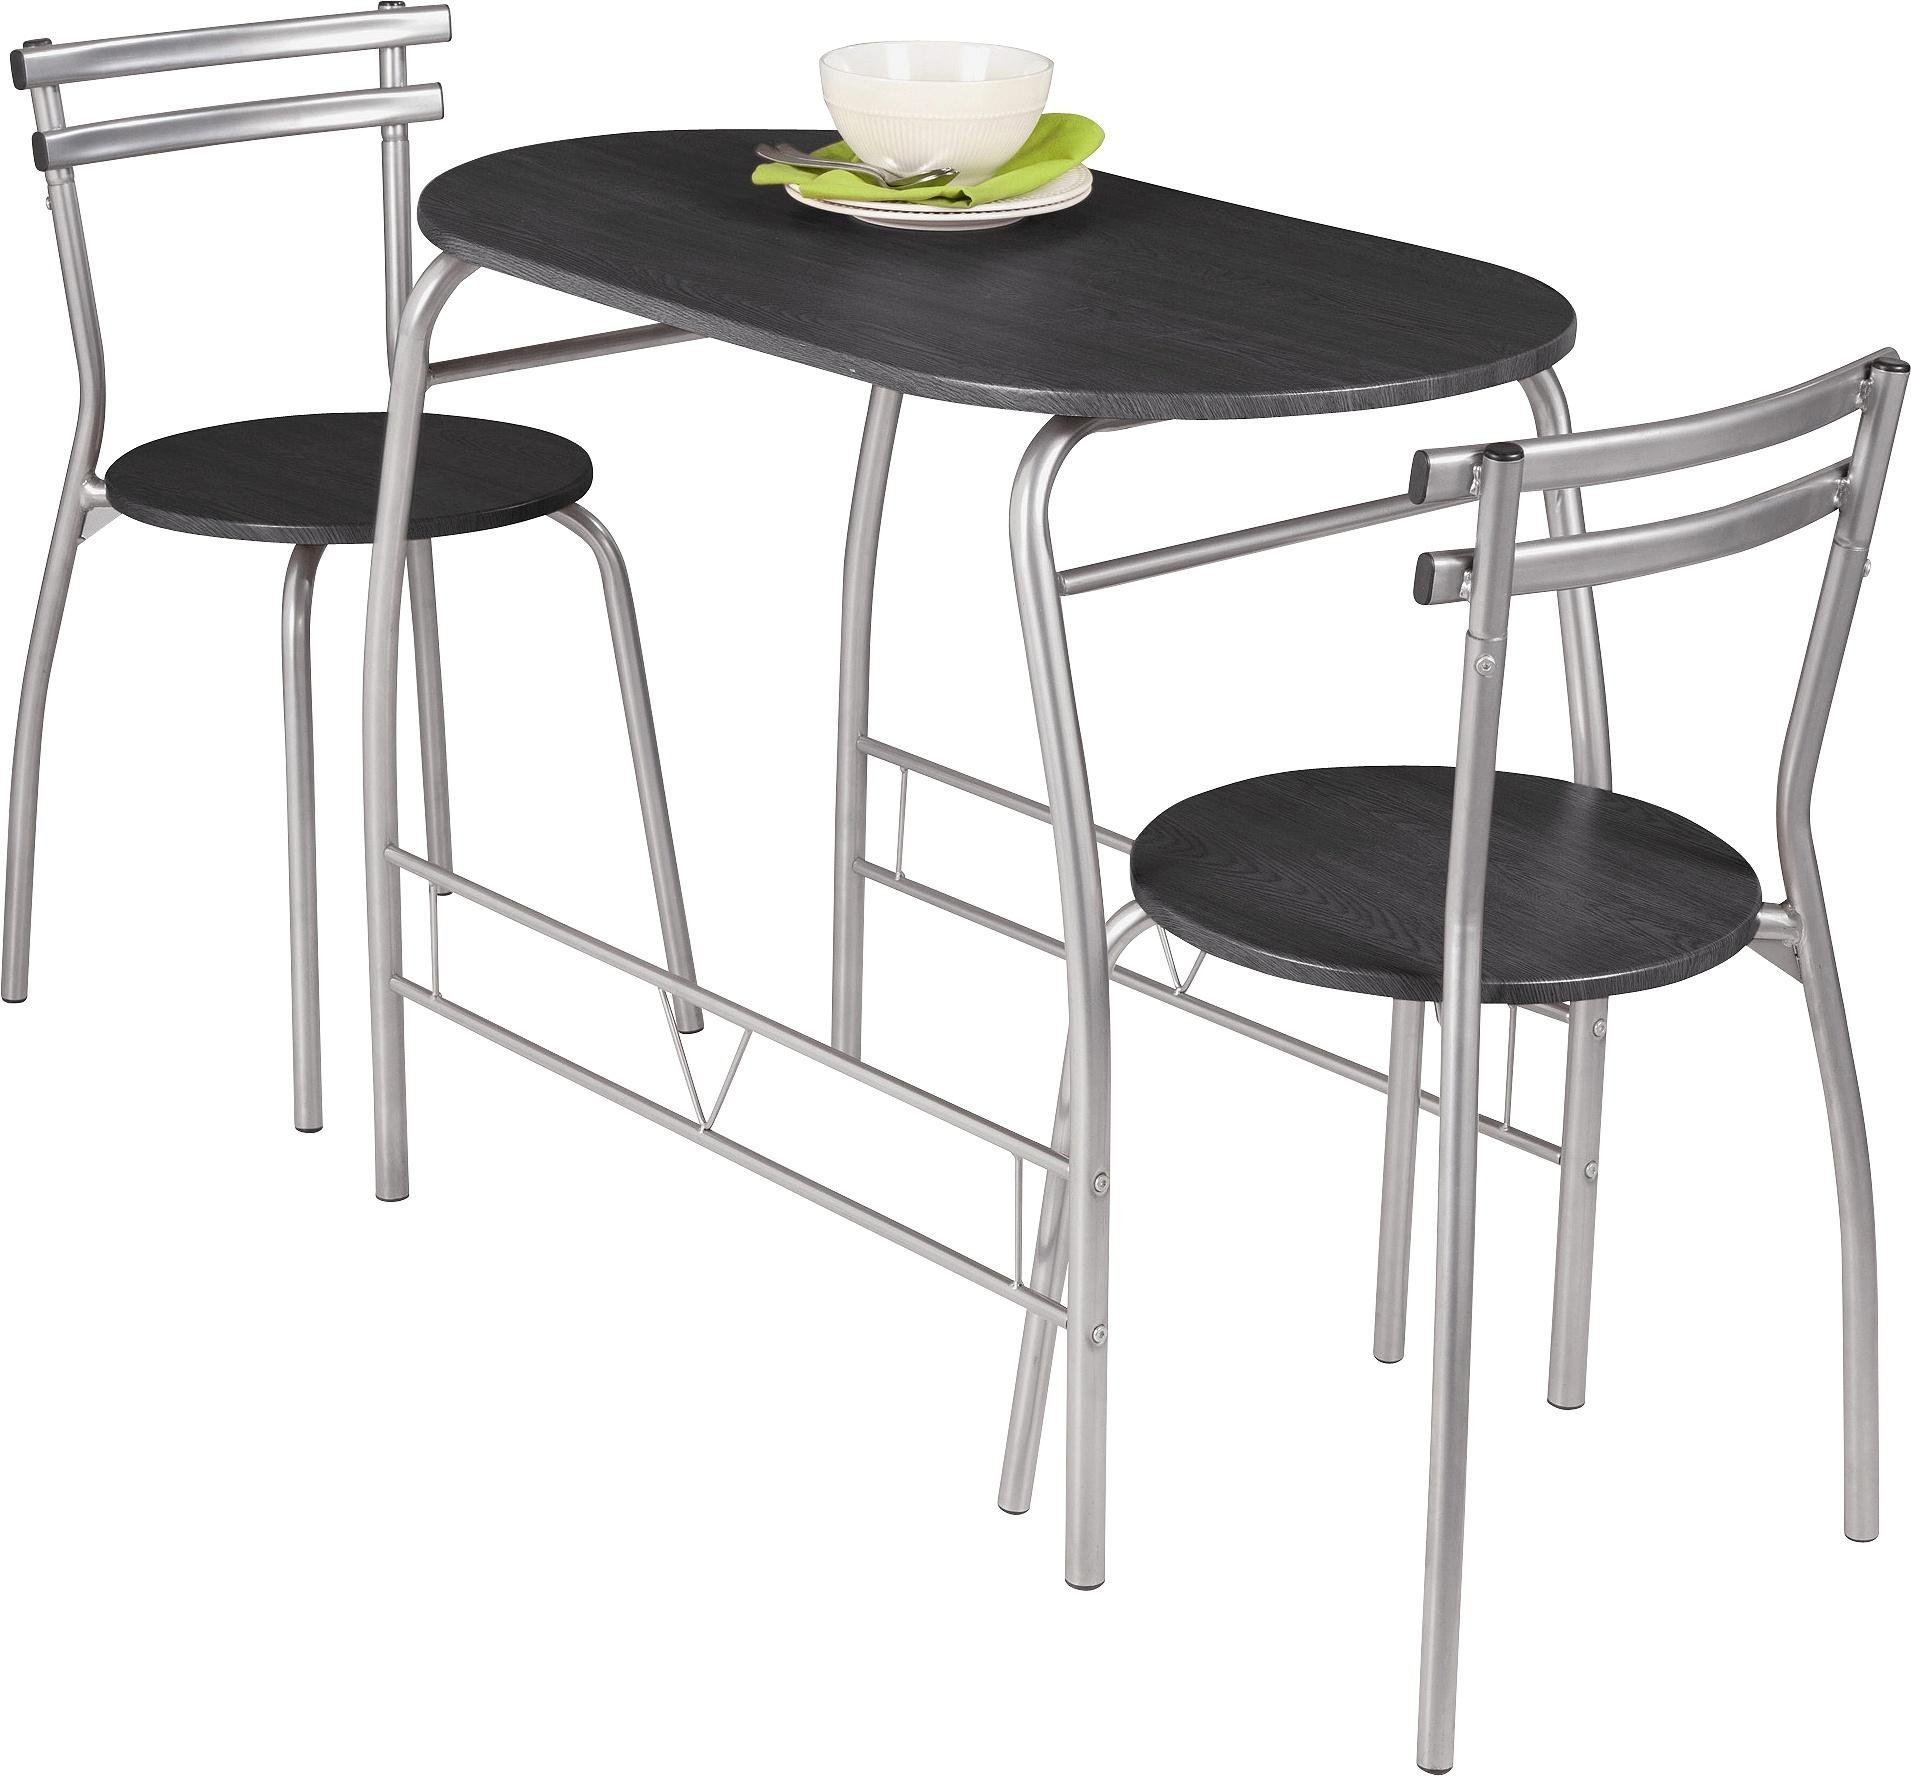 SALE On Argos Home Vegas Dining Table & 2 Chairs